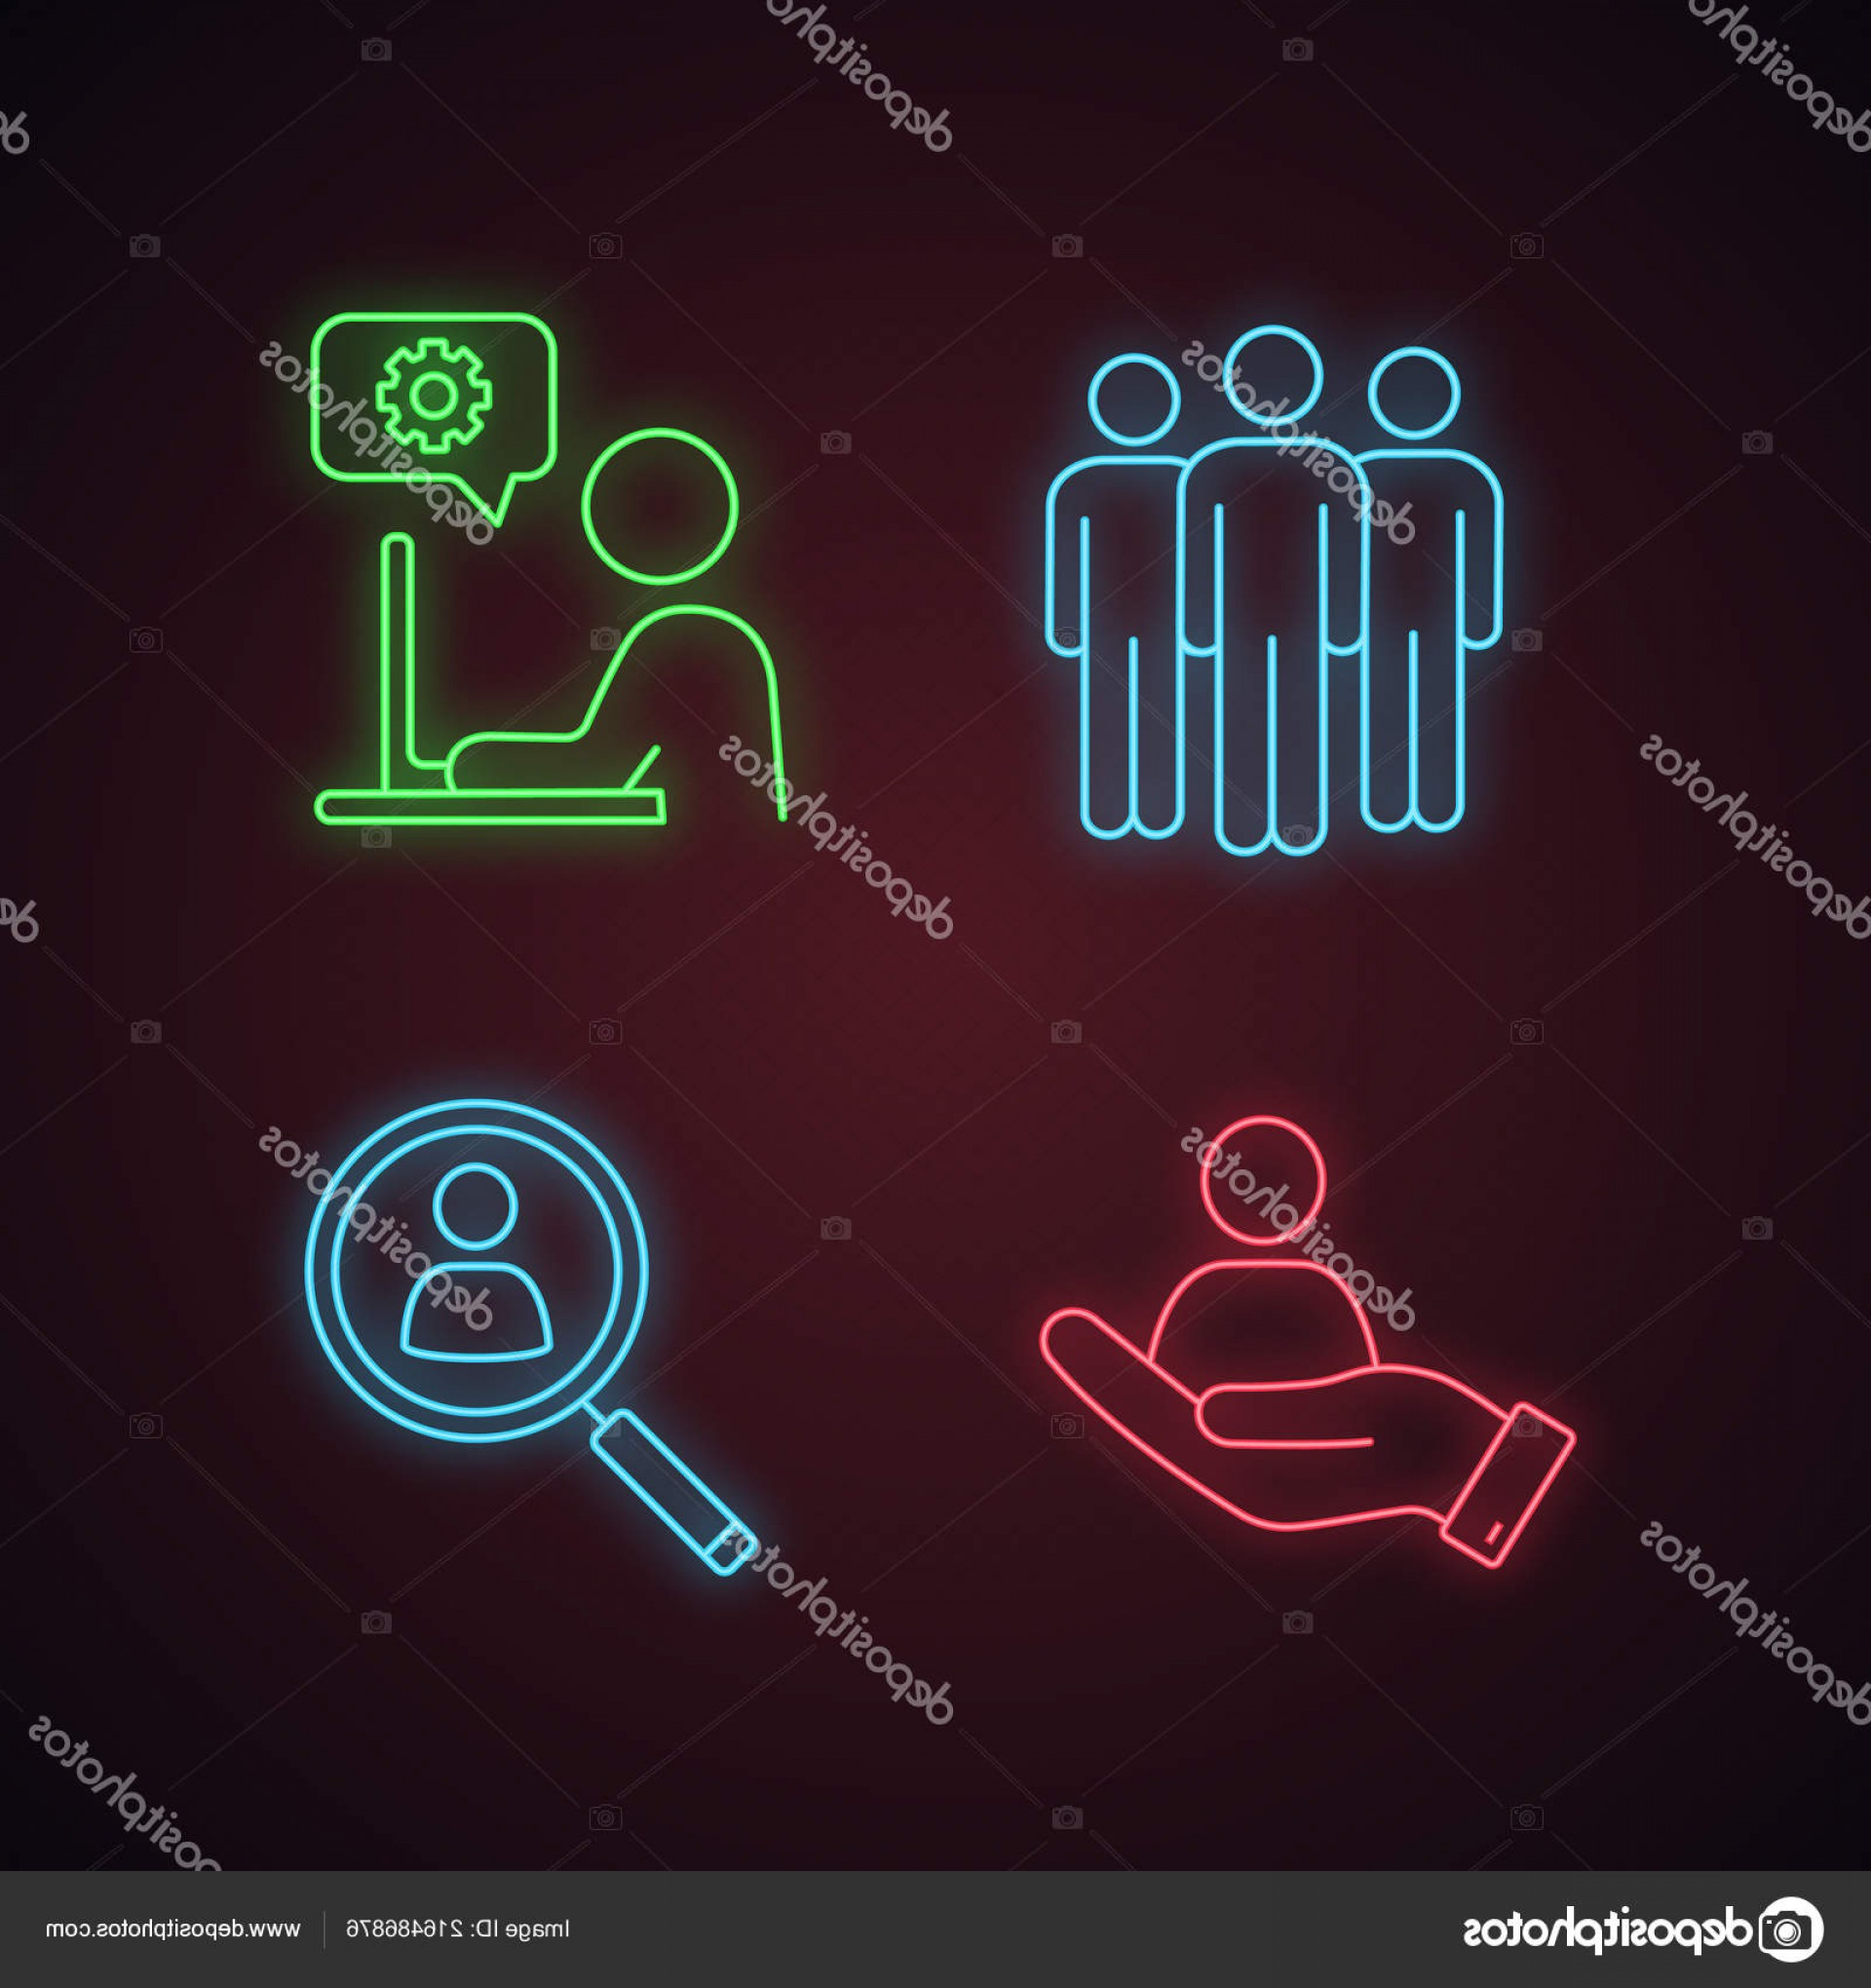 Support Staff Vector: Stock Illustration Business Management Neon Light Icons